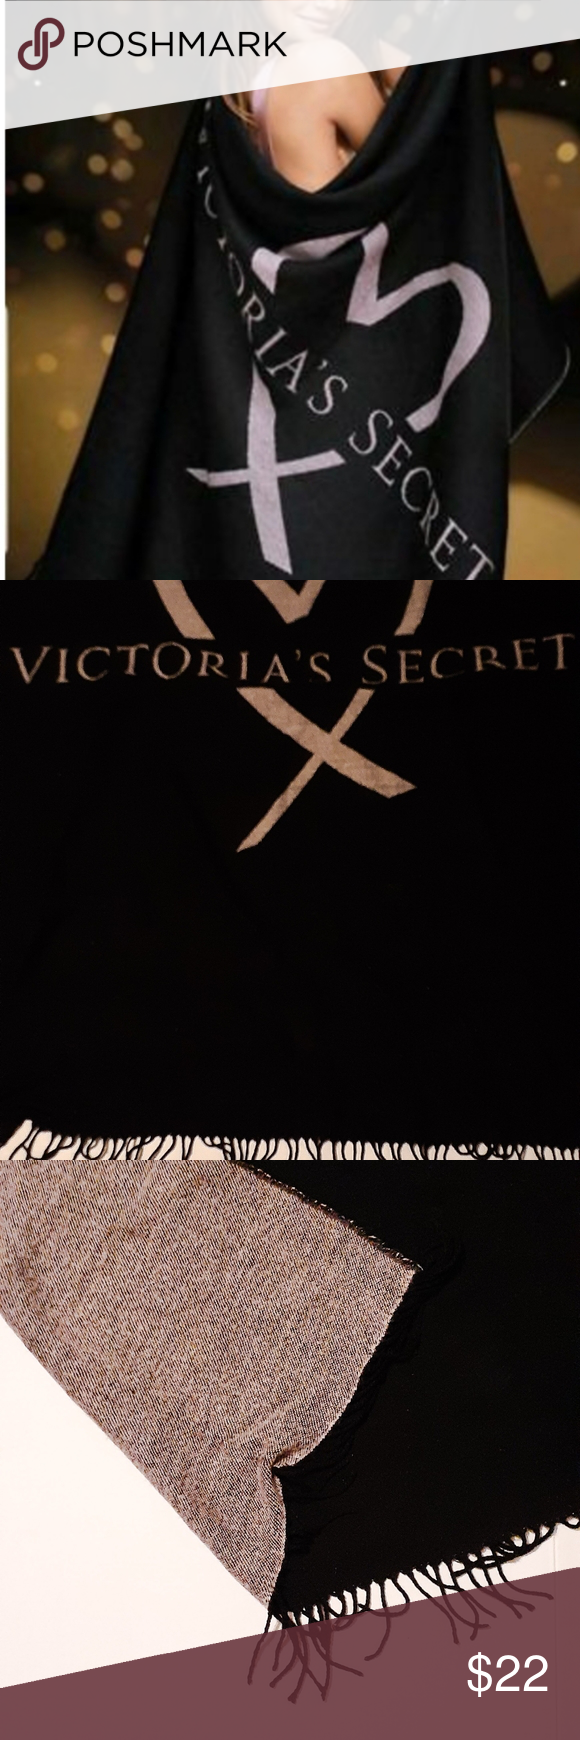 ?Cozy Victoria Secret Throw Blanket Cuddle up in Victoria's Secret Soft and C...